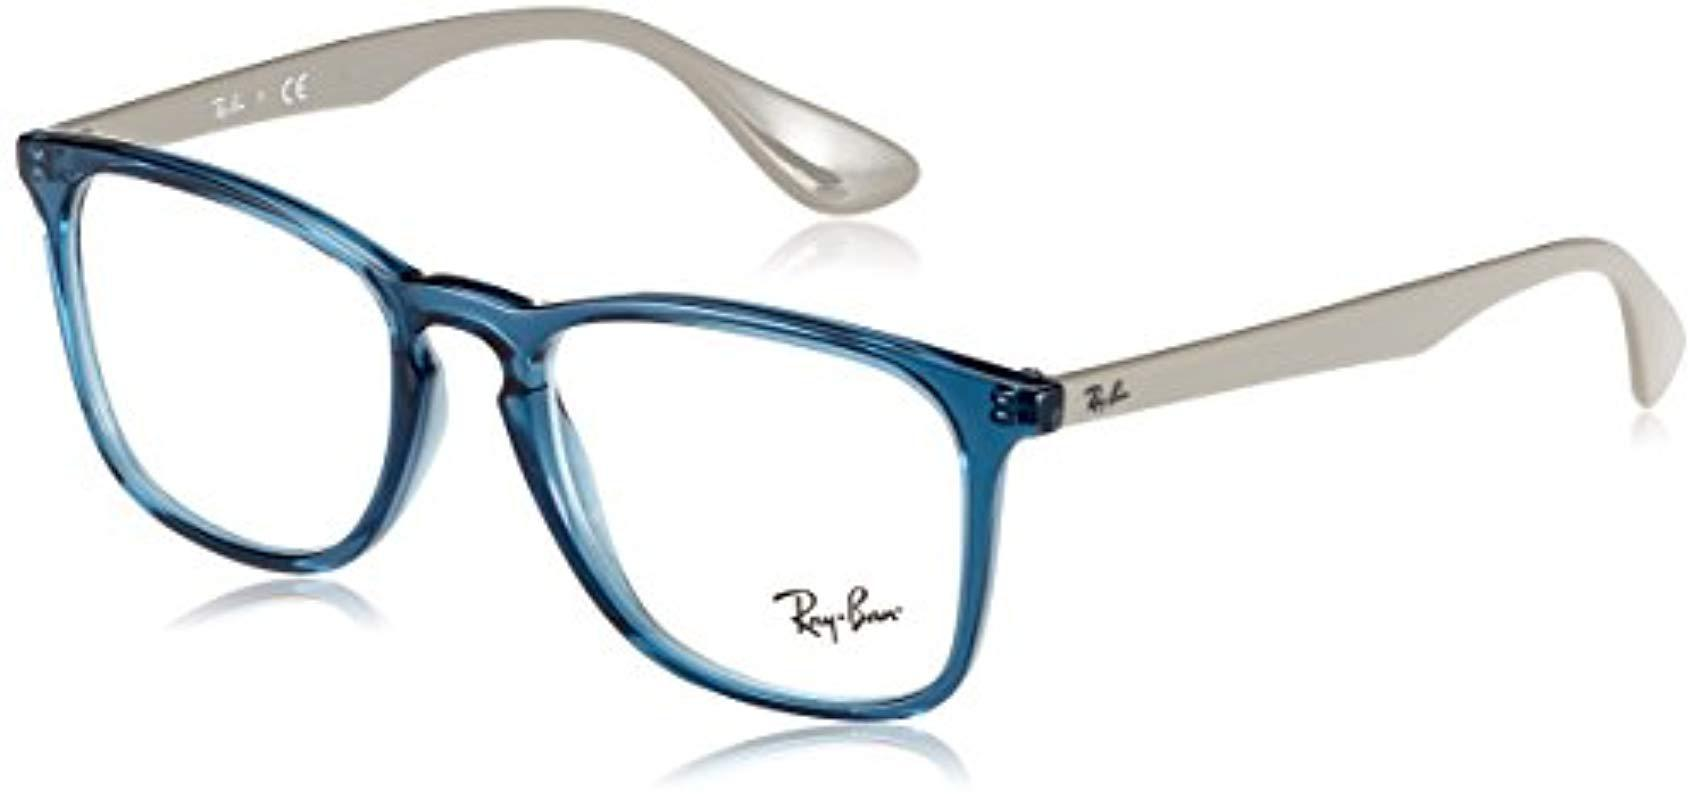 fdbe366900 Ray-Ban 0rx 7074 5732 52 Optical Frames